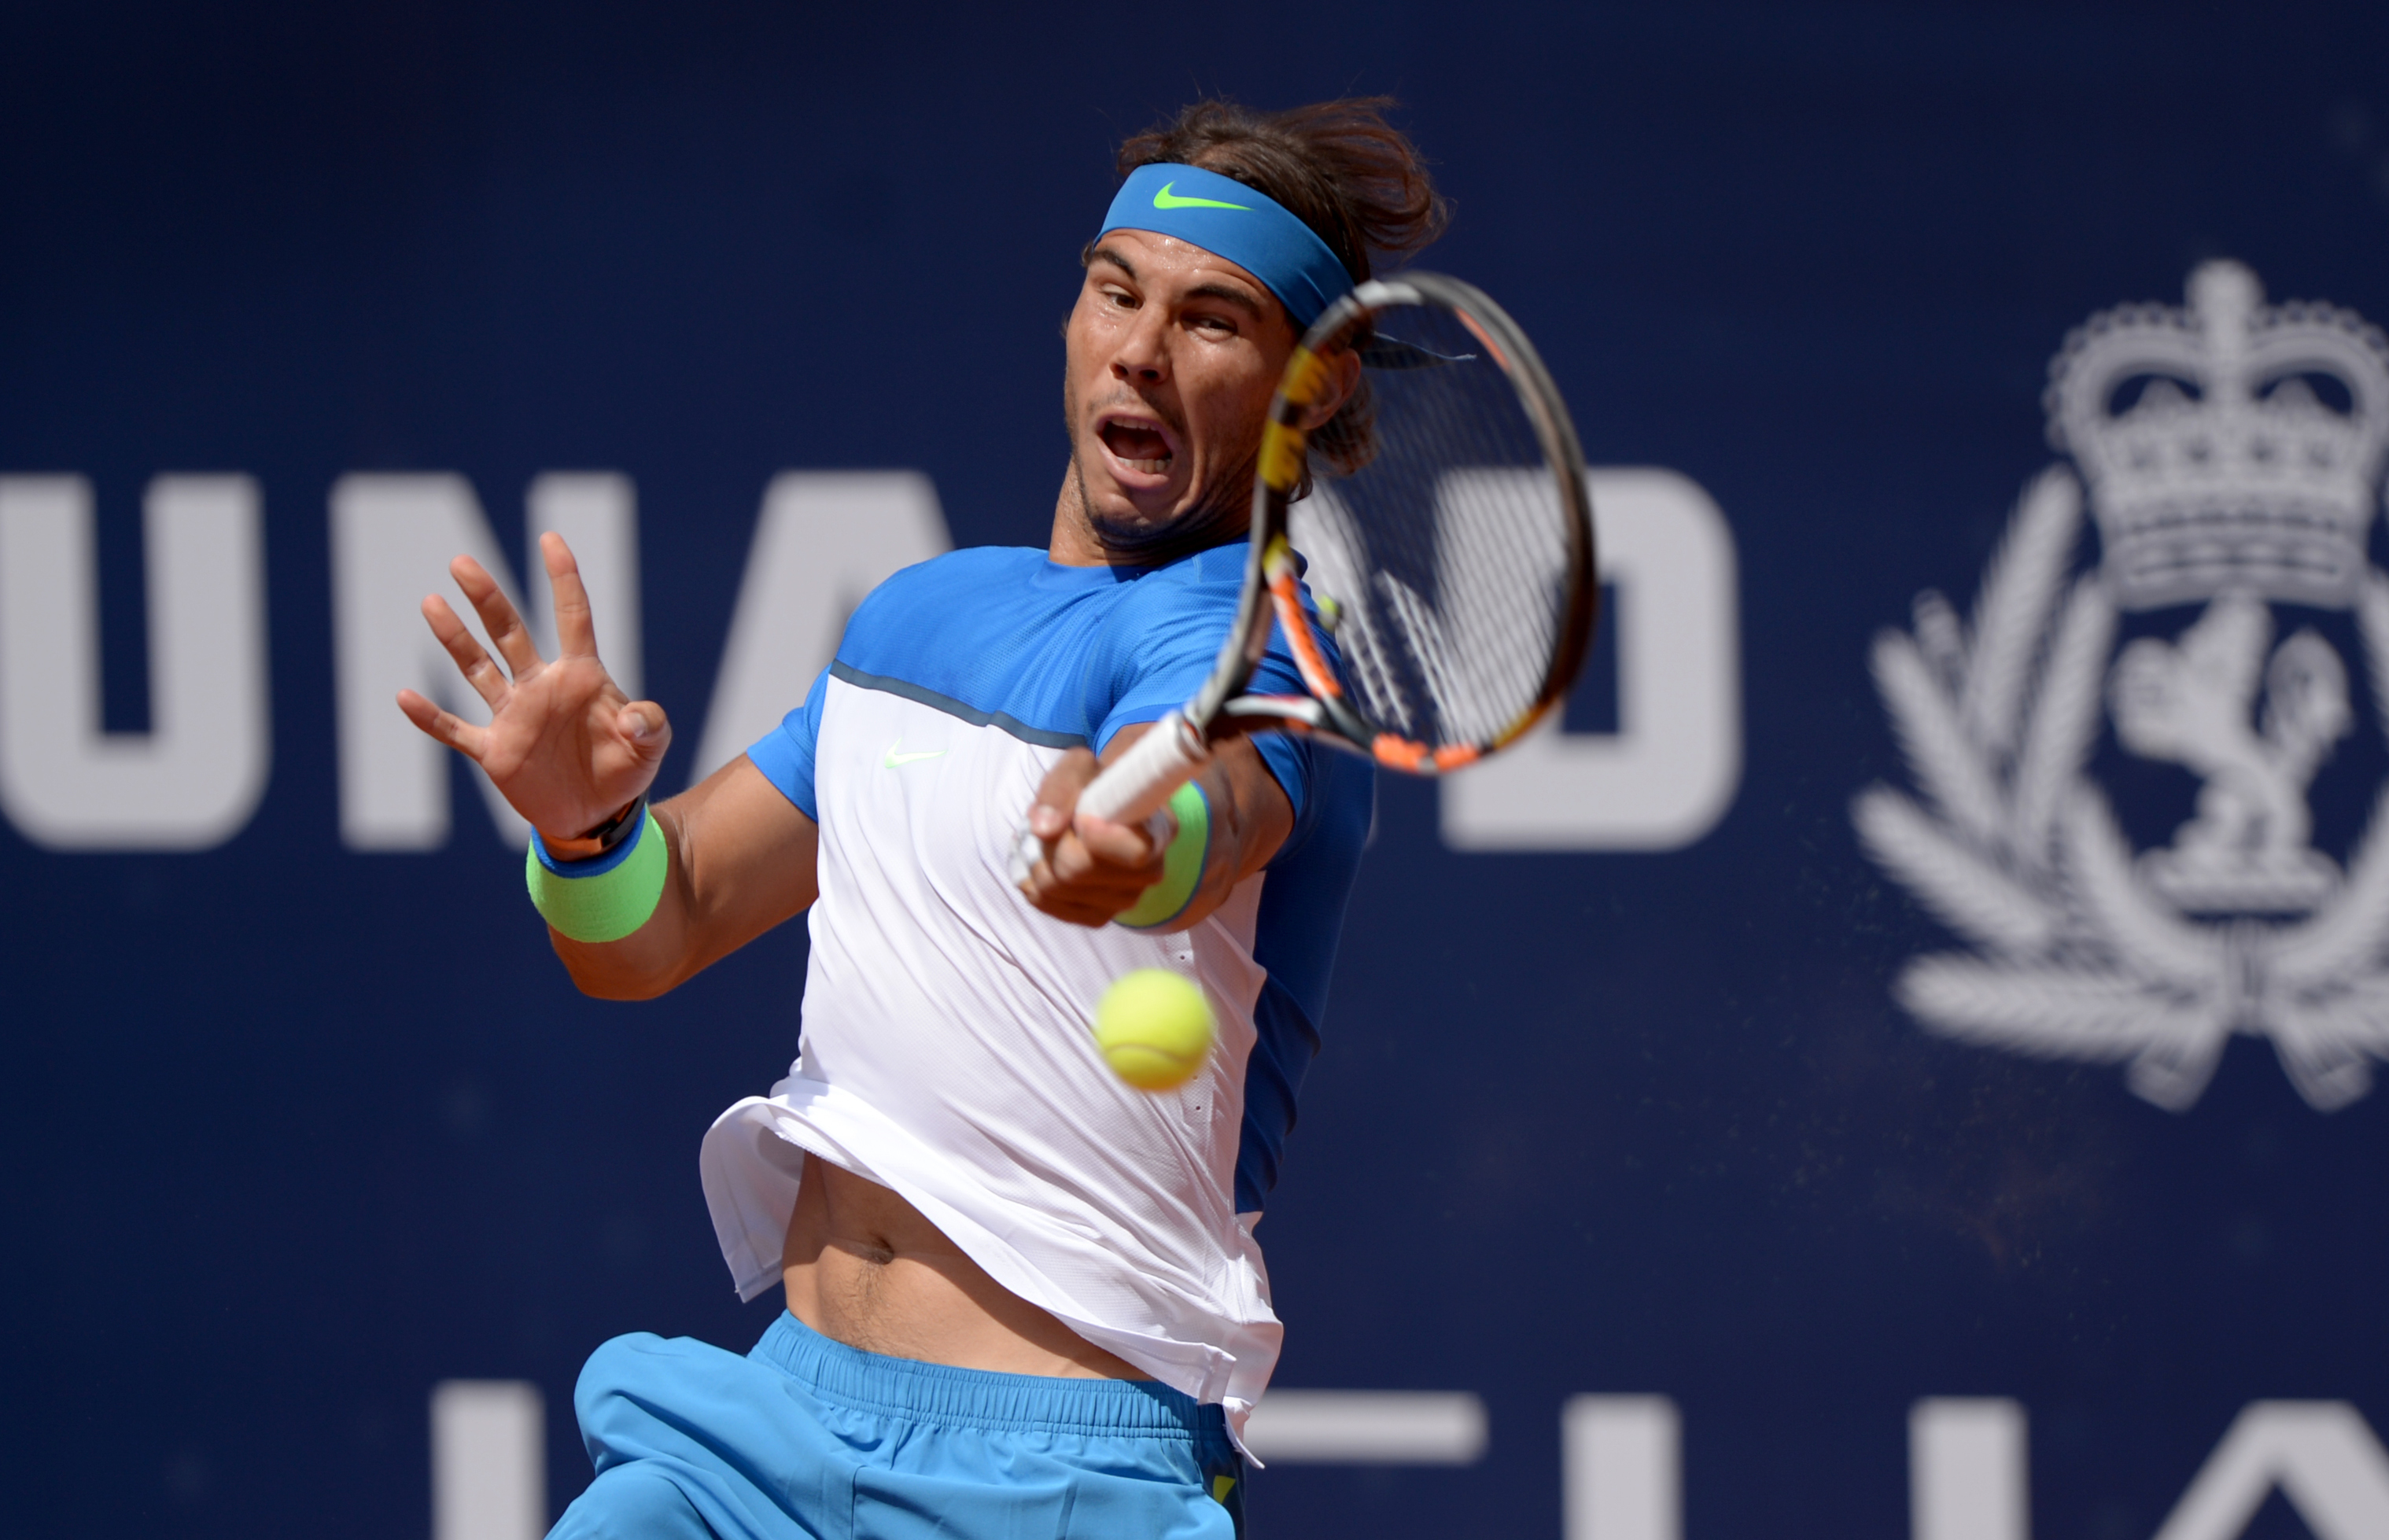 Spain's Rafael Nadal  returns a shot  to Fabio Fognini from Italy during the final match of  the ATP tennis tournament in Hamburg, Germany, Sunday Aug. 2, 2015.  (Daniel Reinhardt/dpa via AP)